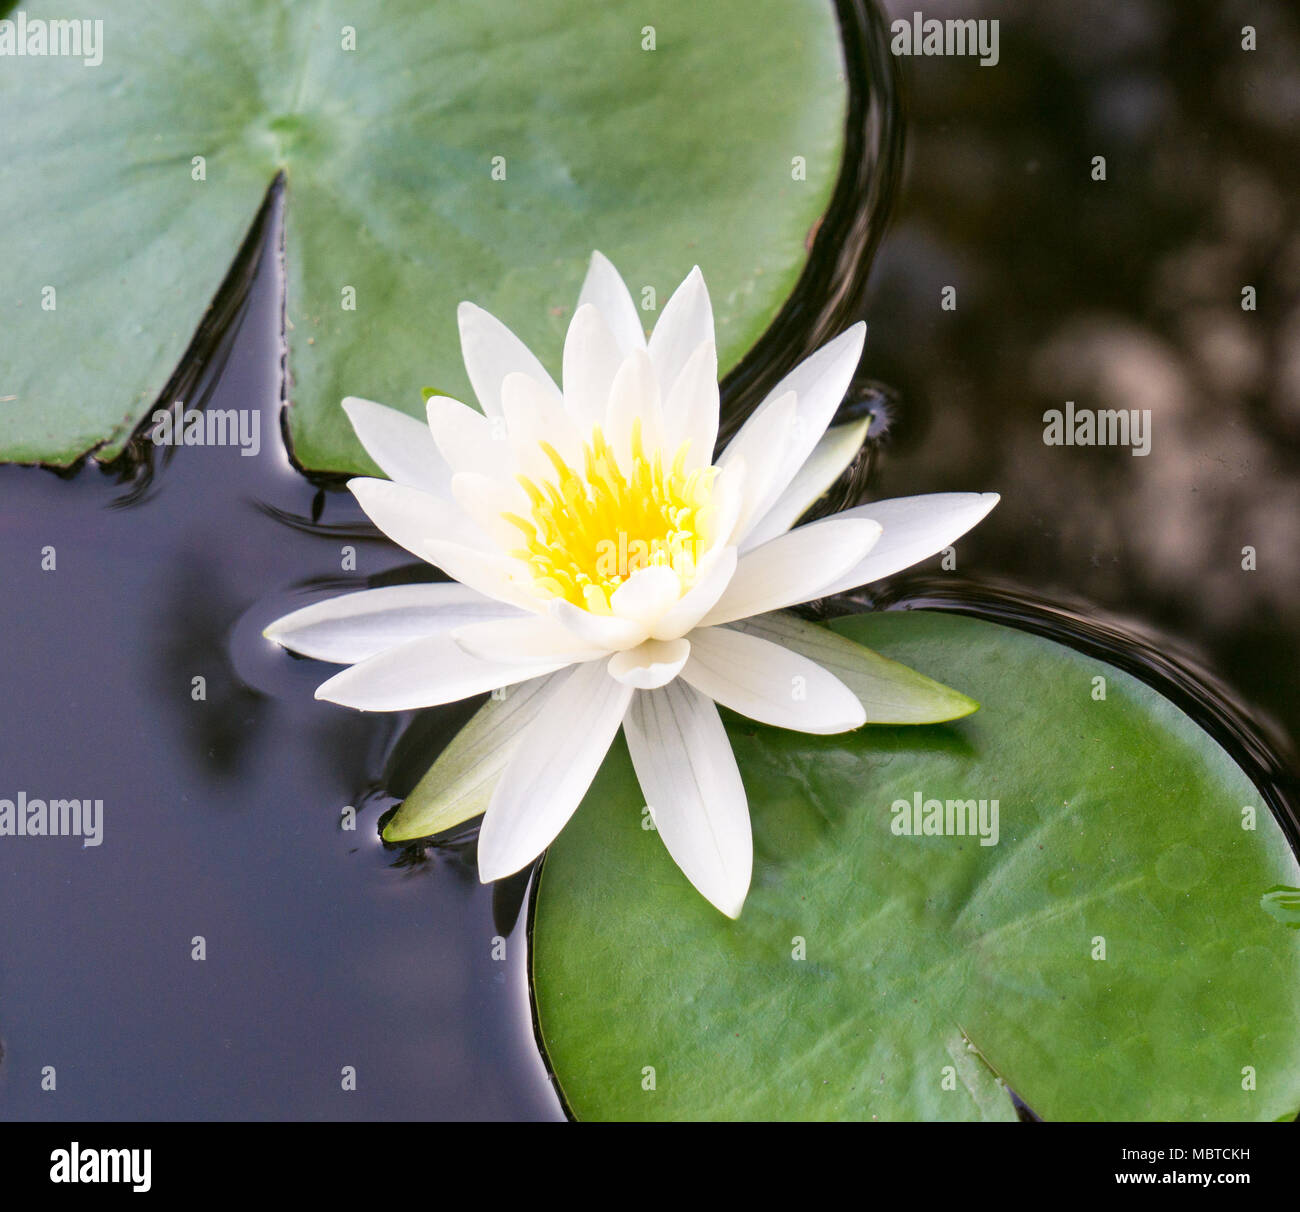 An up close view of a white lotus flower blooming and lily pad an up close view of a white lotus flower blooming and lily pad floating in a botanical water garden izmirmasajfo